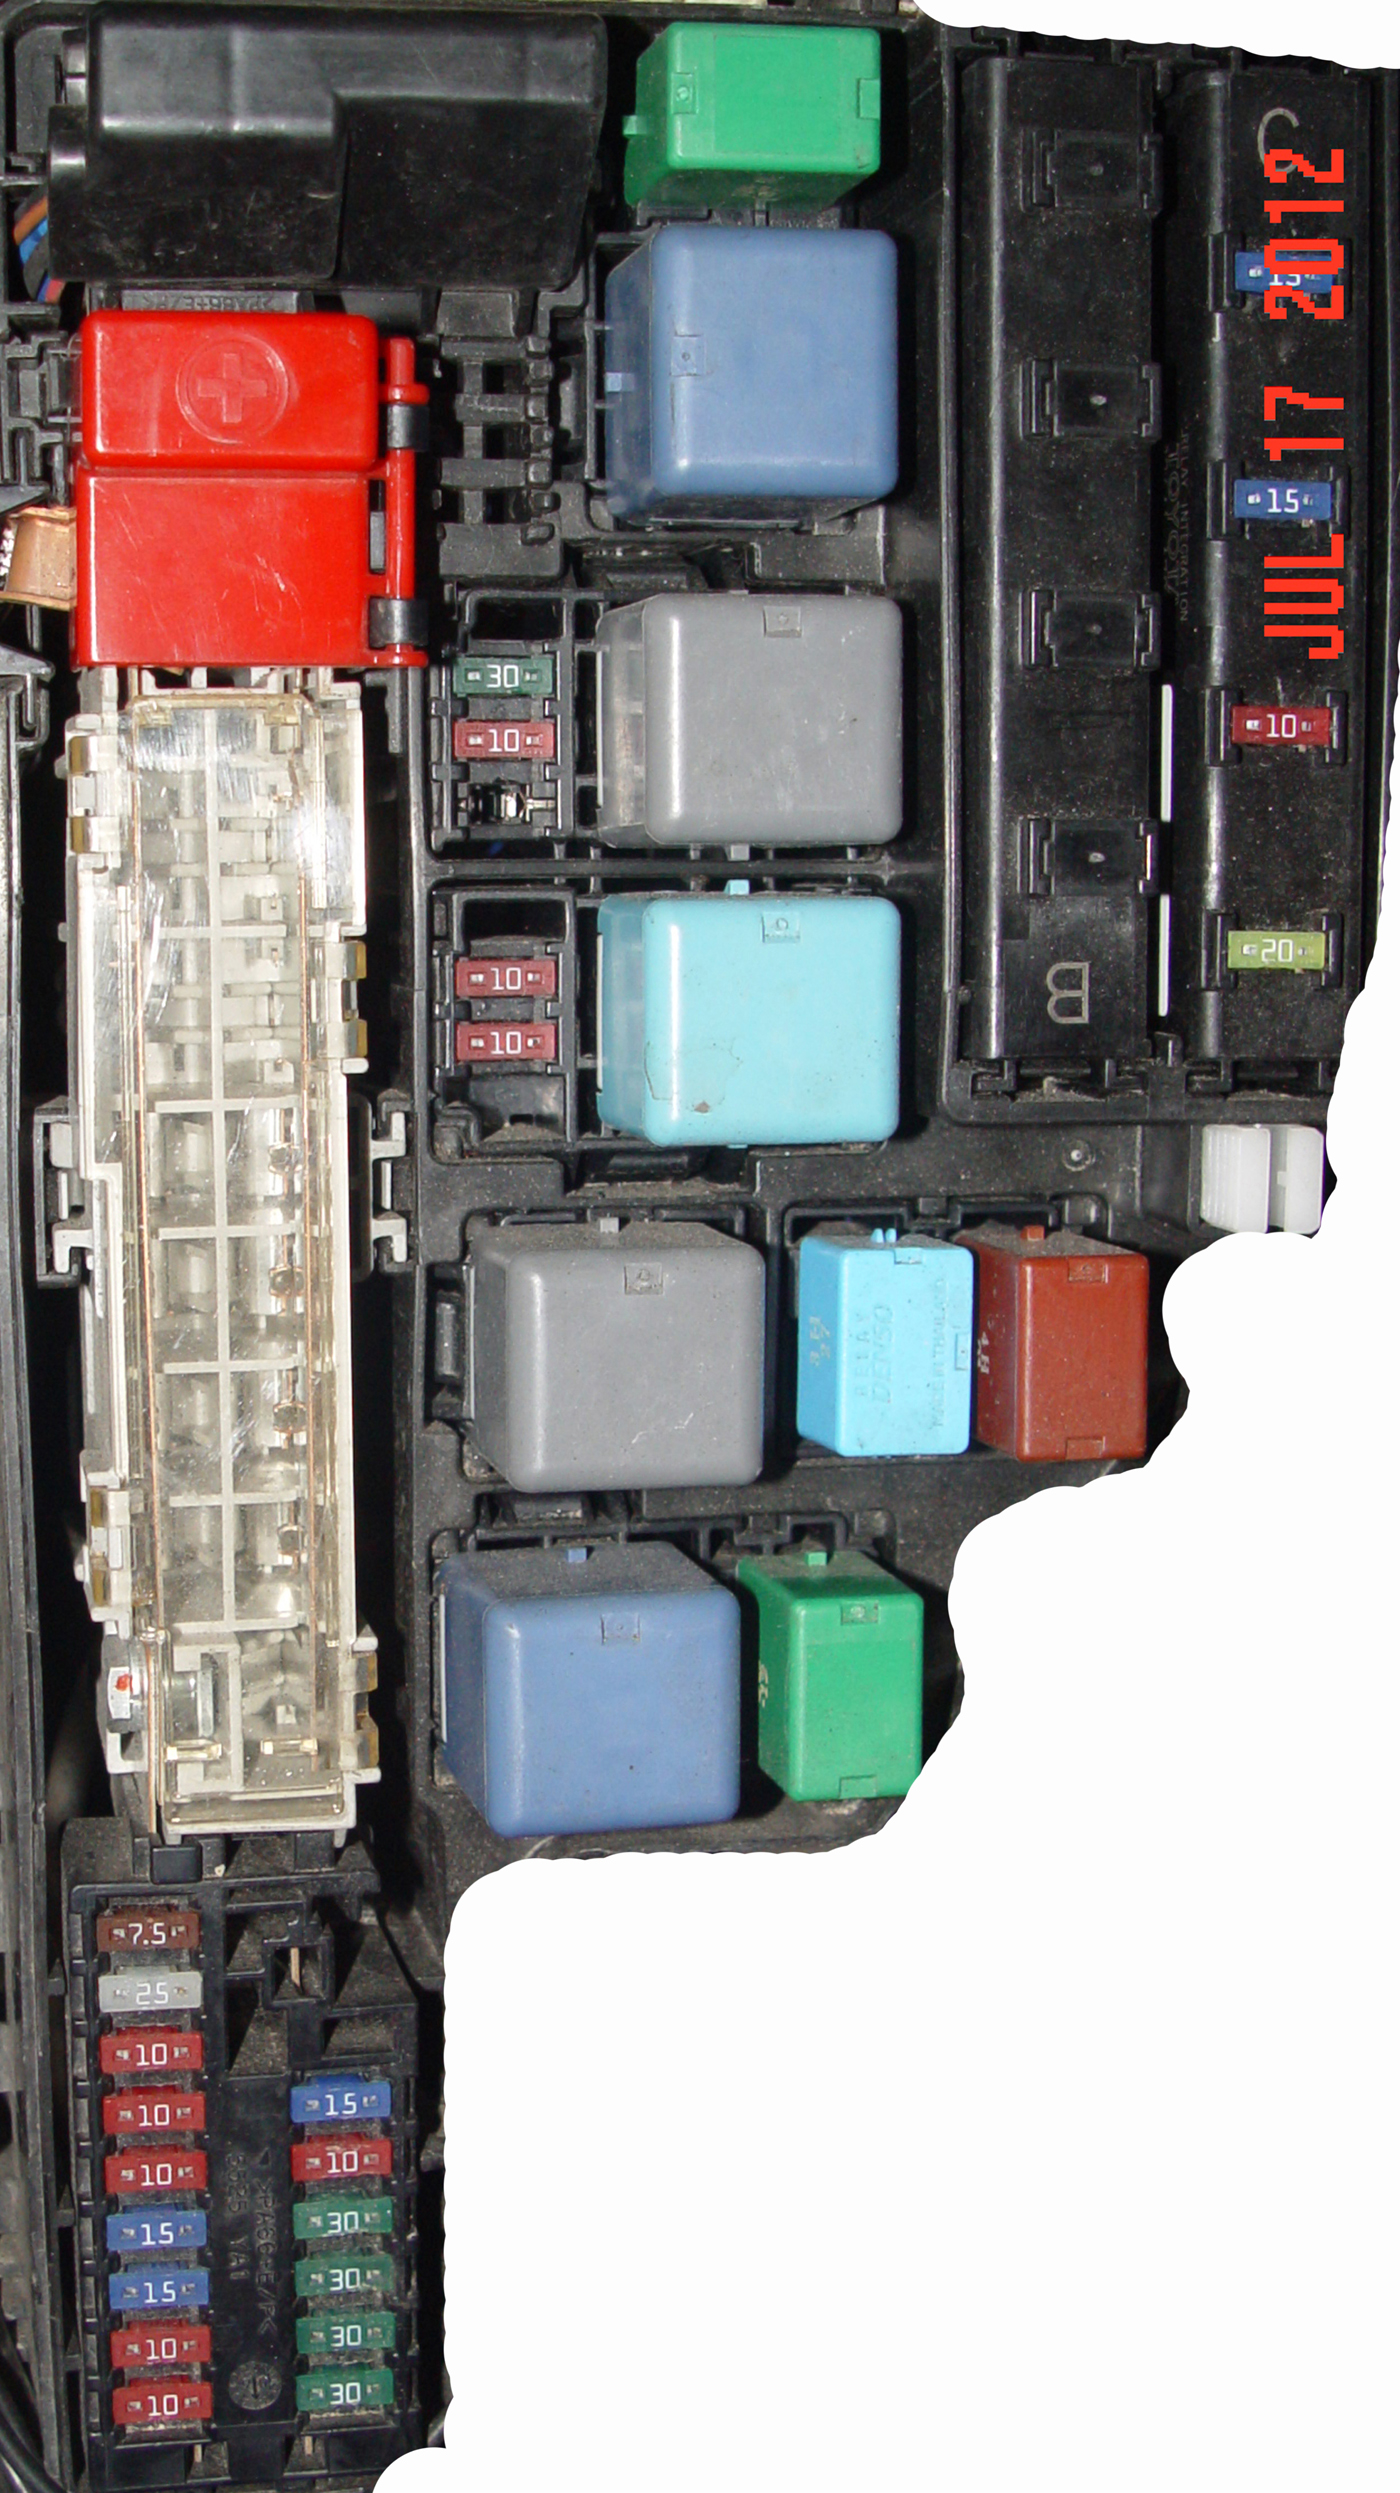 2004 toyota prius fuse box diagram iirGtIL 2008 toyota prius fuse box 2007 toyota prius fuse box \u2022 free 2004 prius wiring diagram at bayanpartner.co